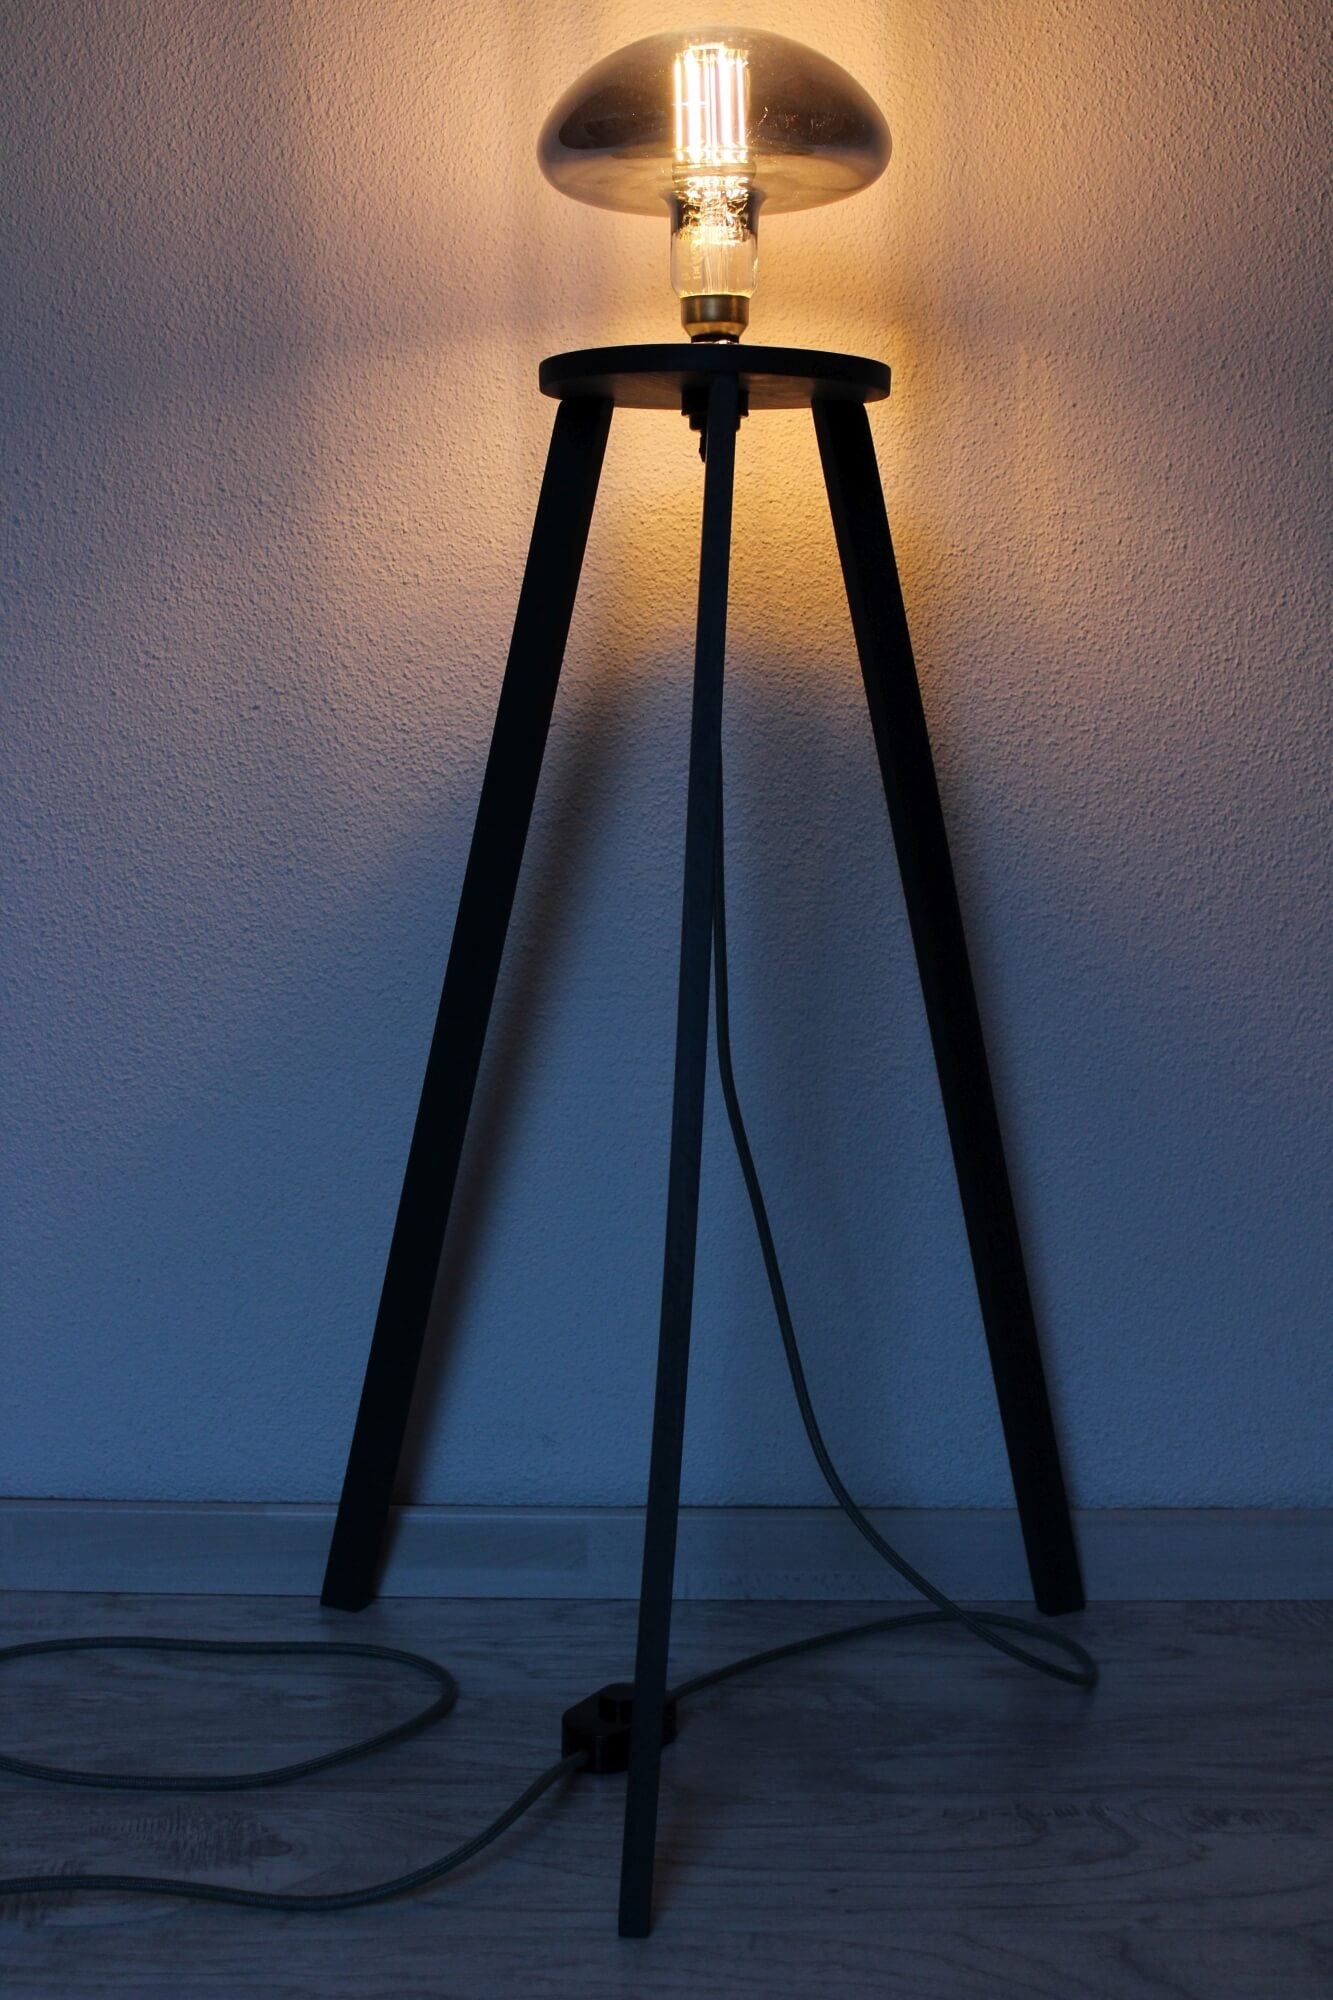 Wooden tripod lamp.